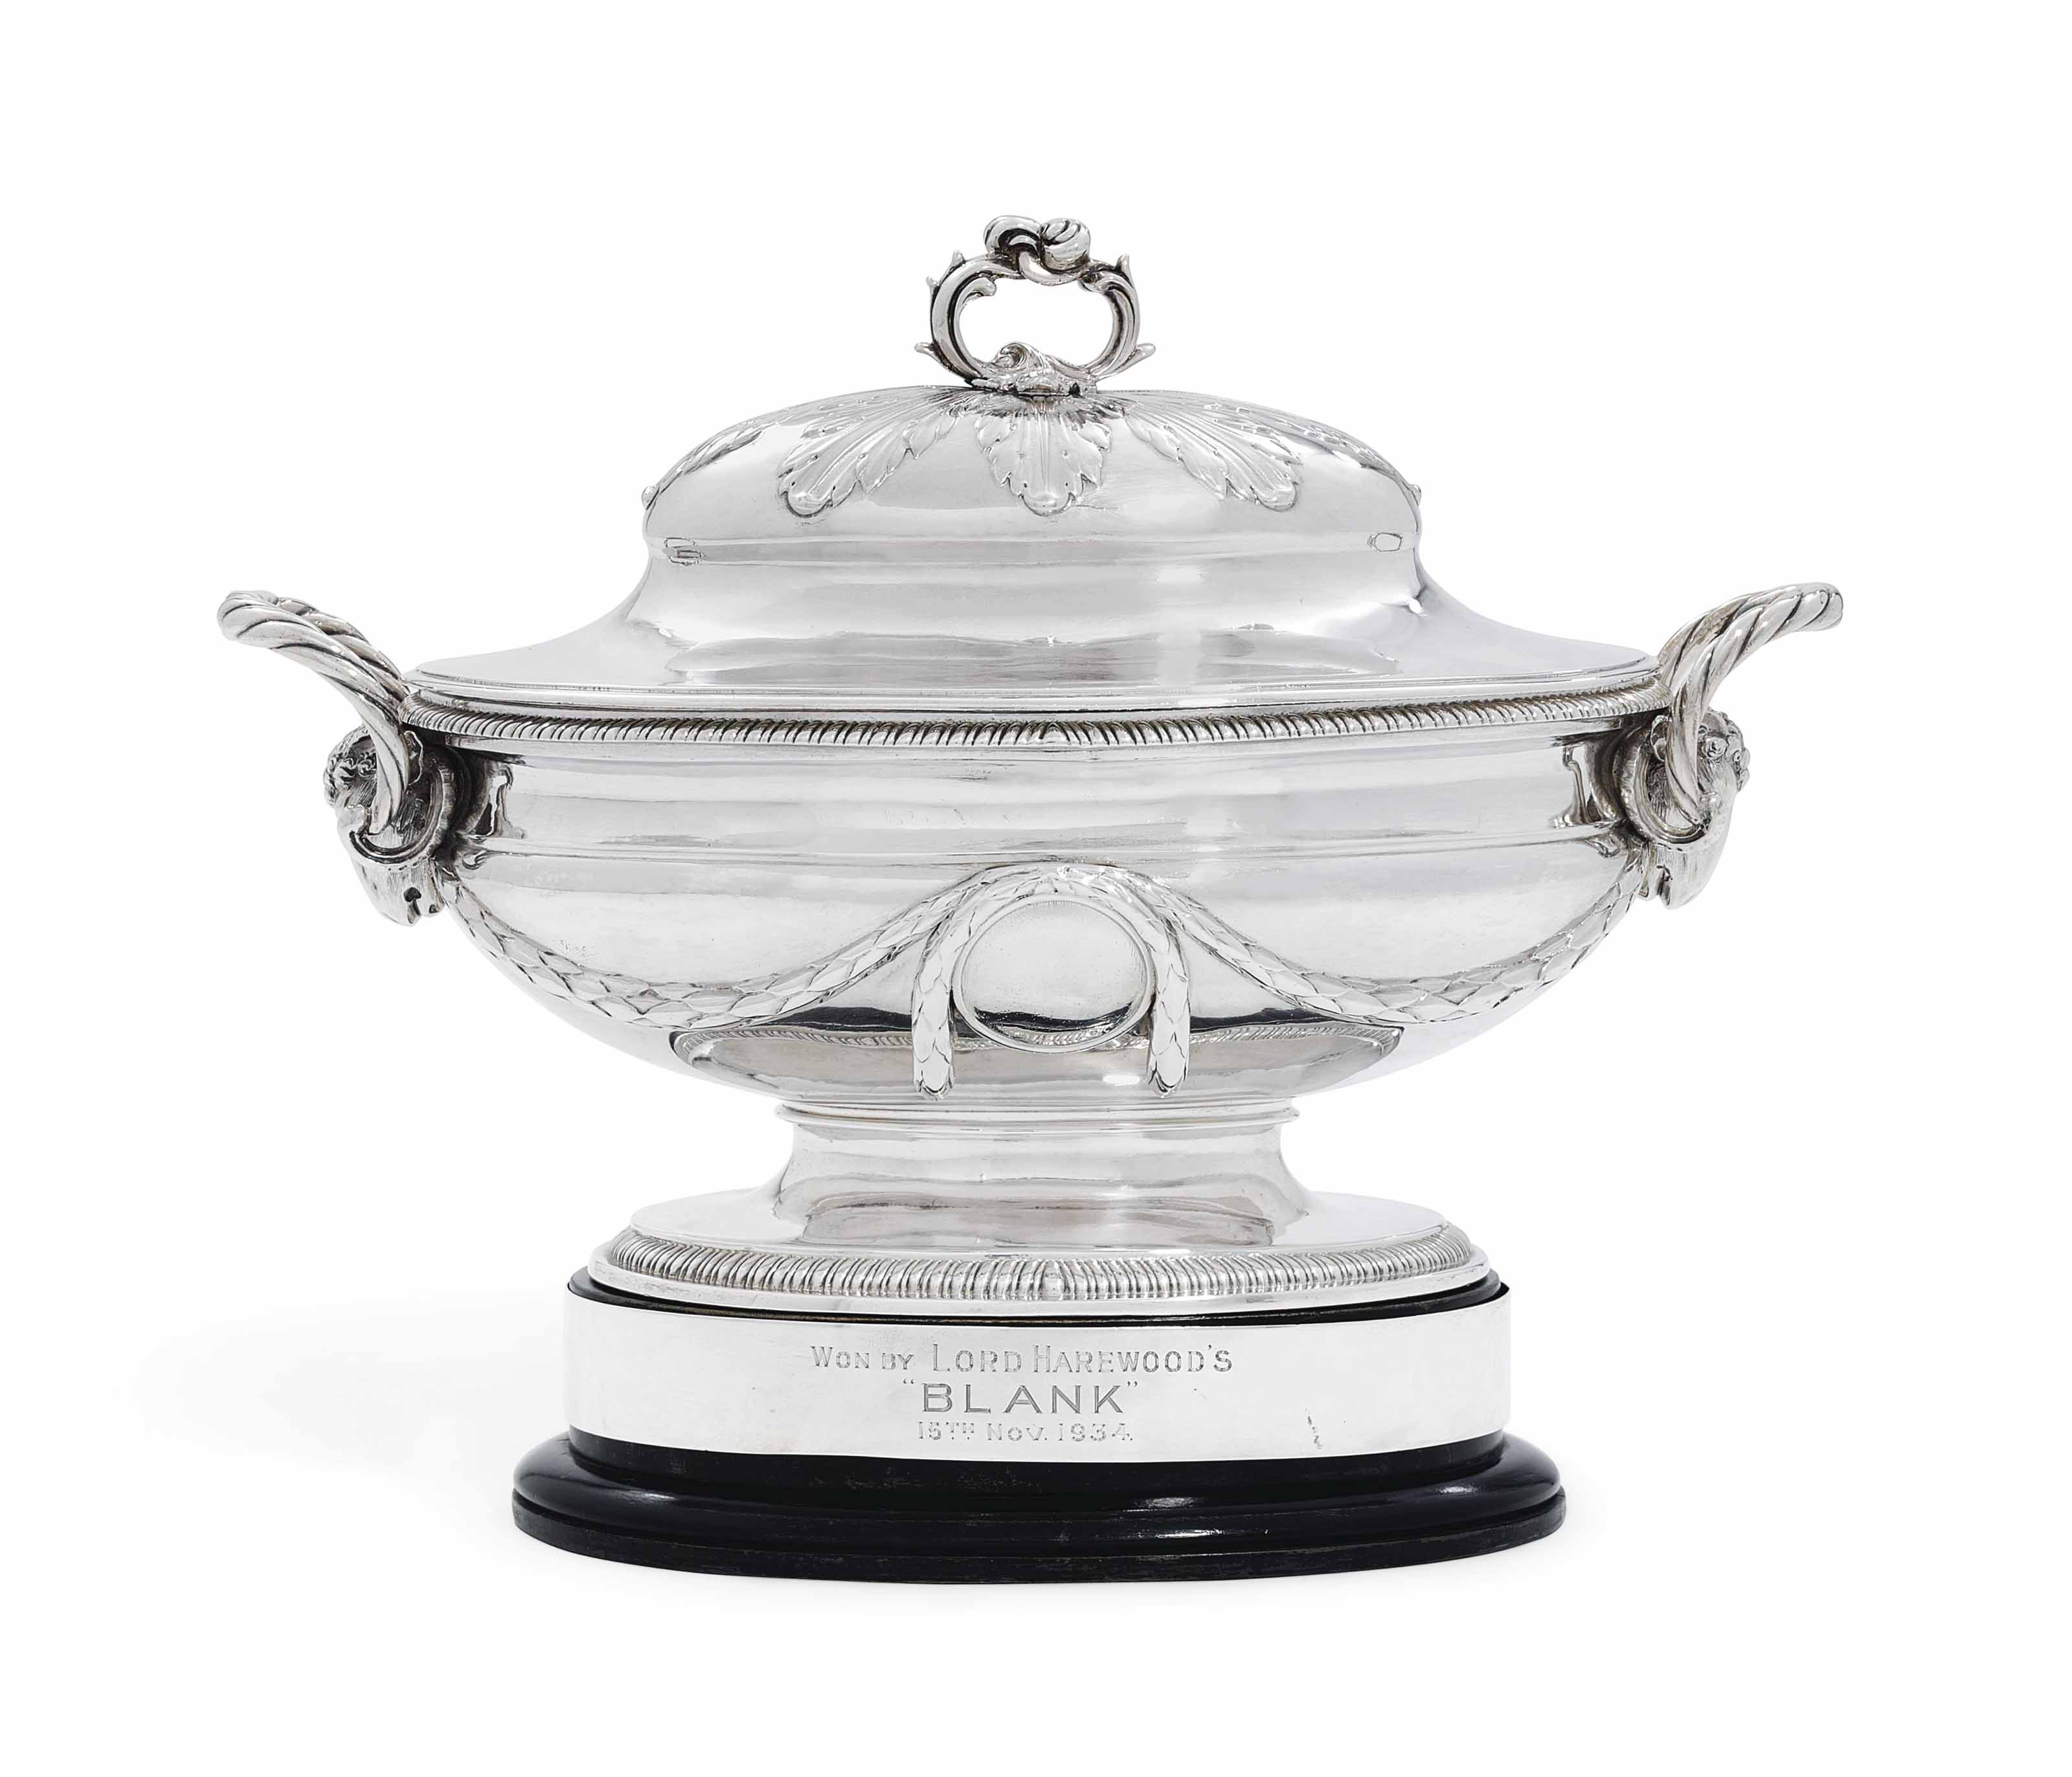 A GEORGE III SILVER TUREEN AND COVER